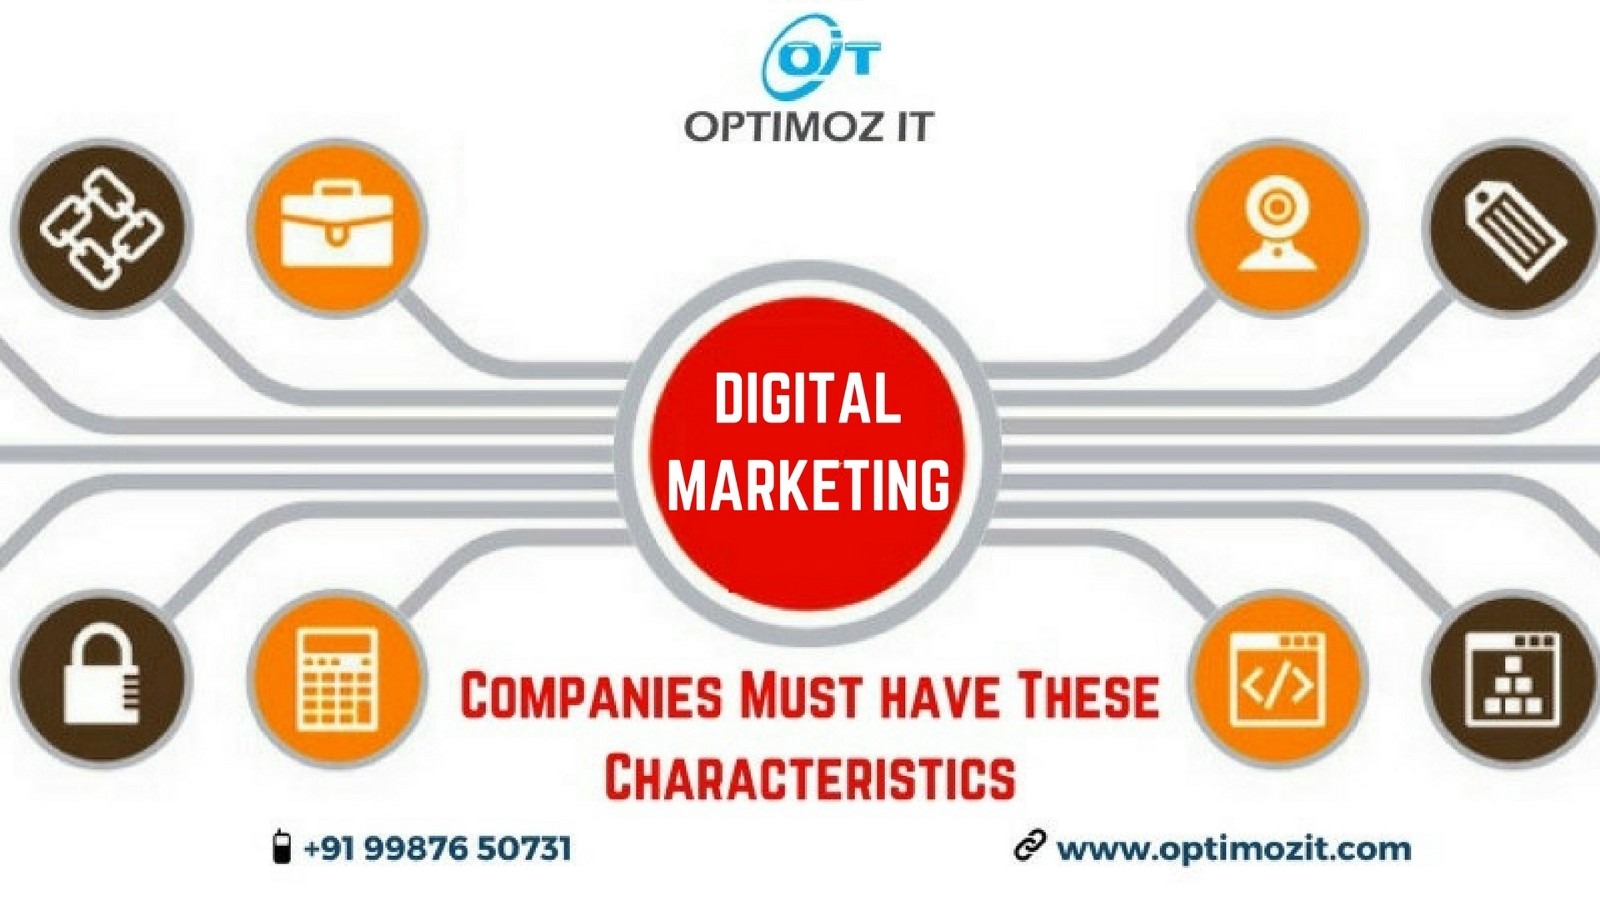 Digital Marketing Companies Must Have These Characteristics